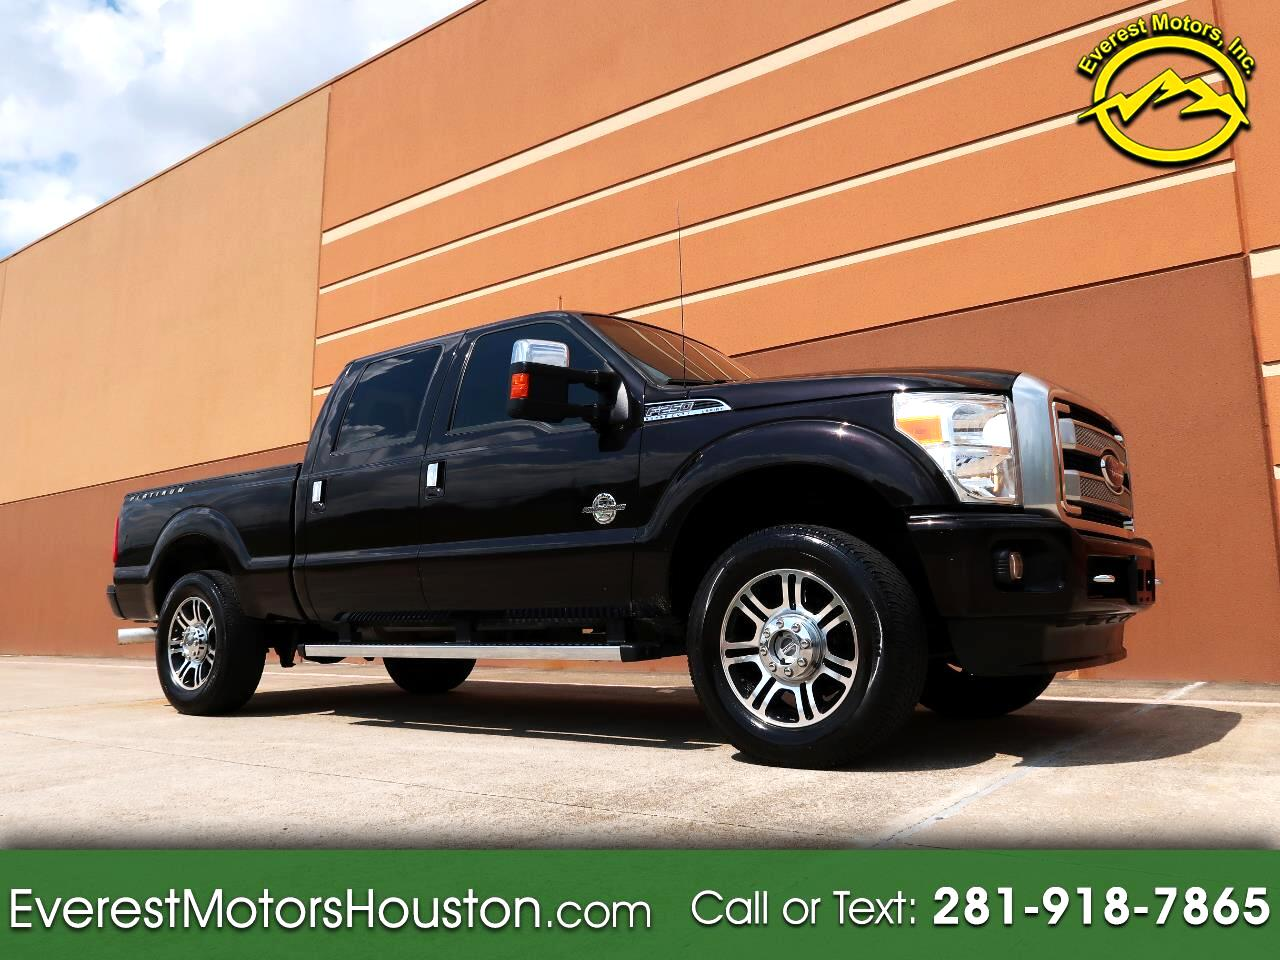 2013 Ford F-250 SD PLATINUM CREW CAB SHORT BED 4WD DIESEL